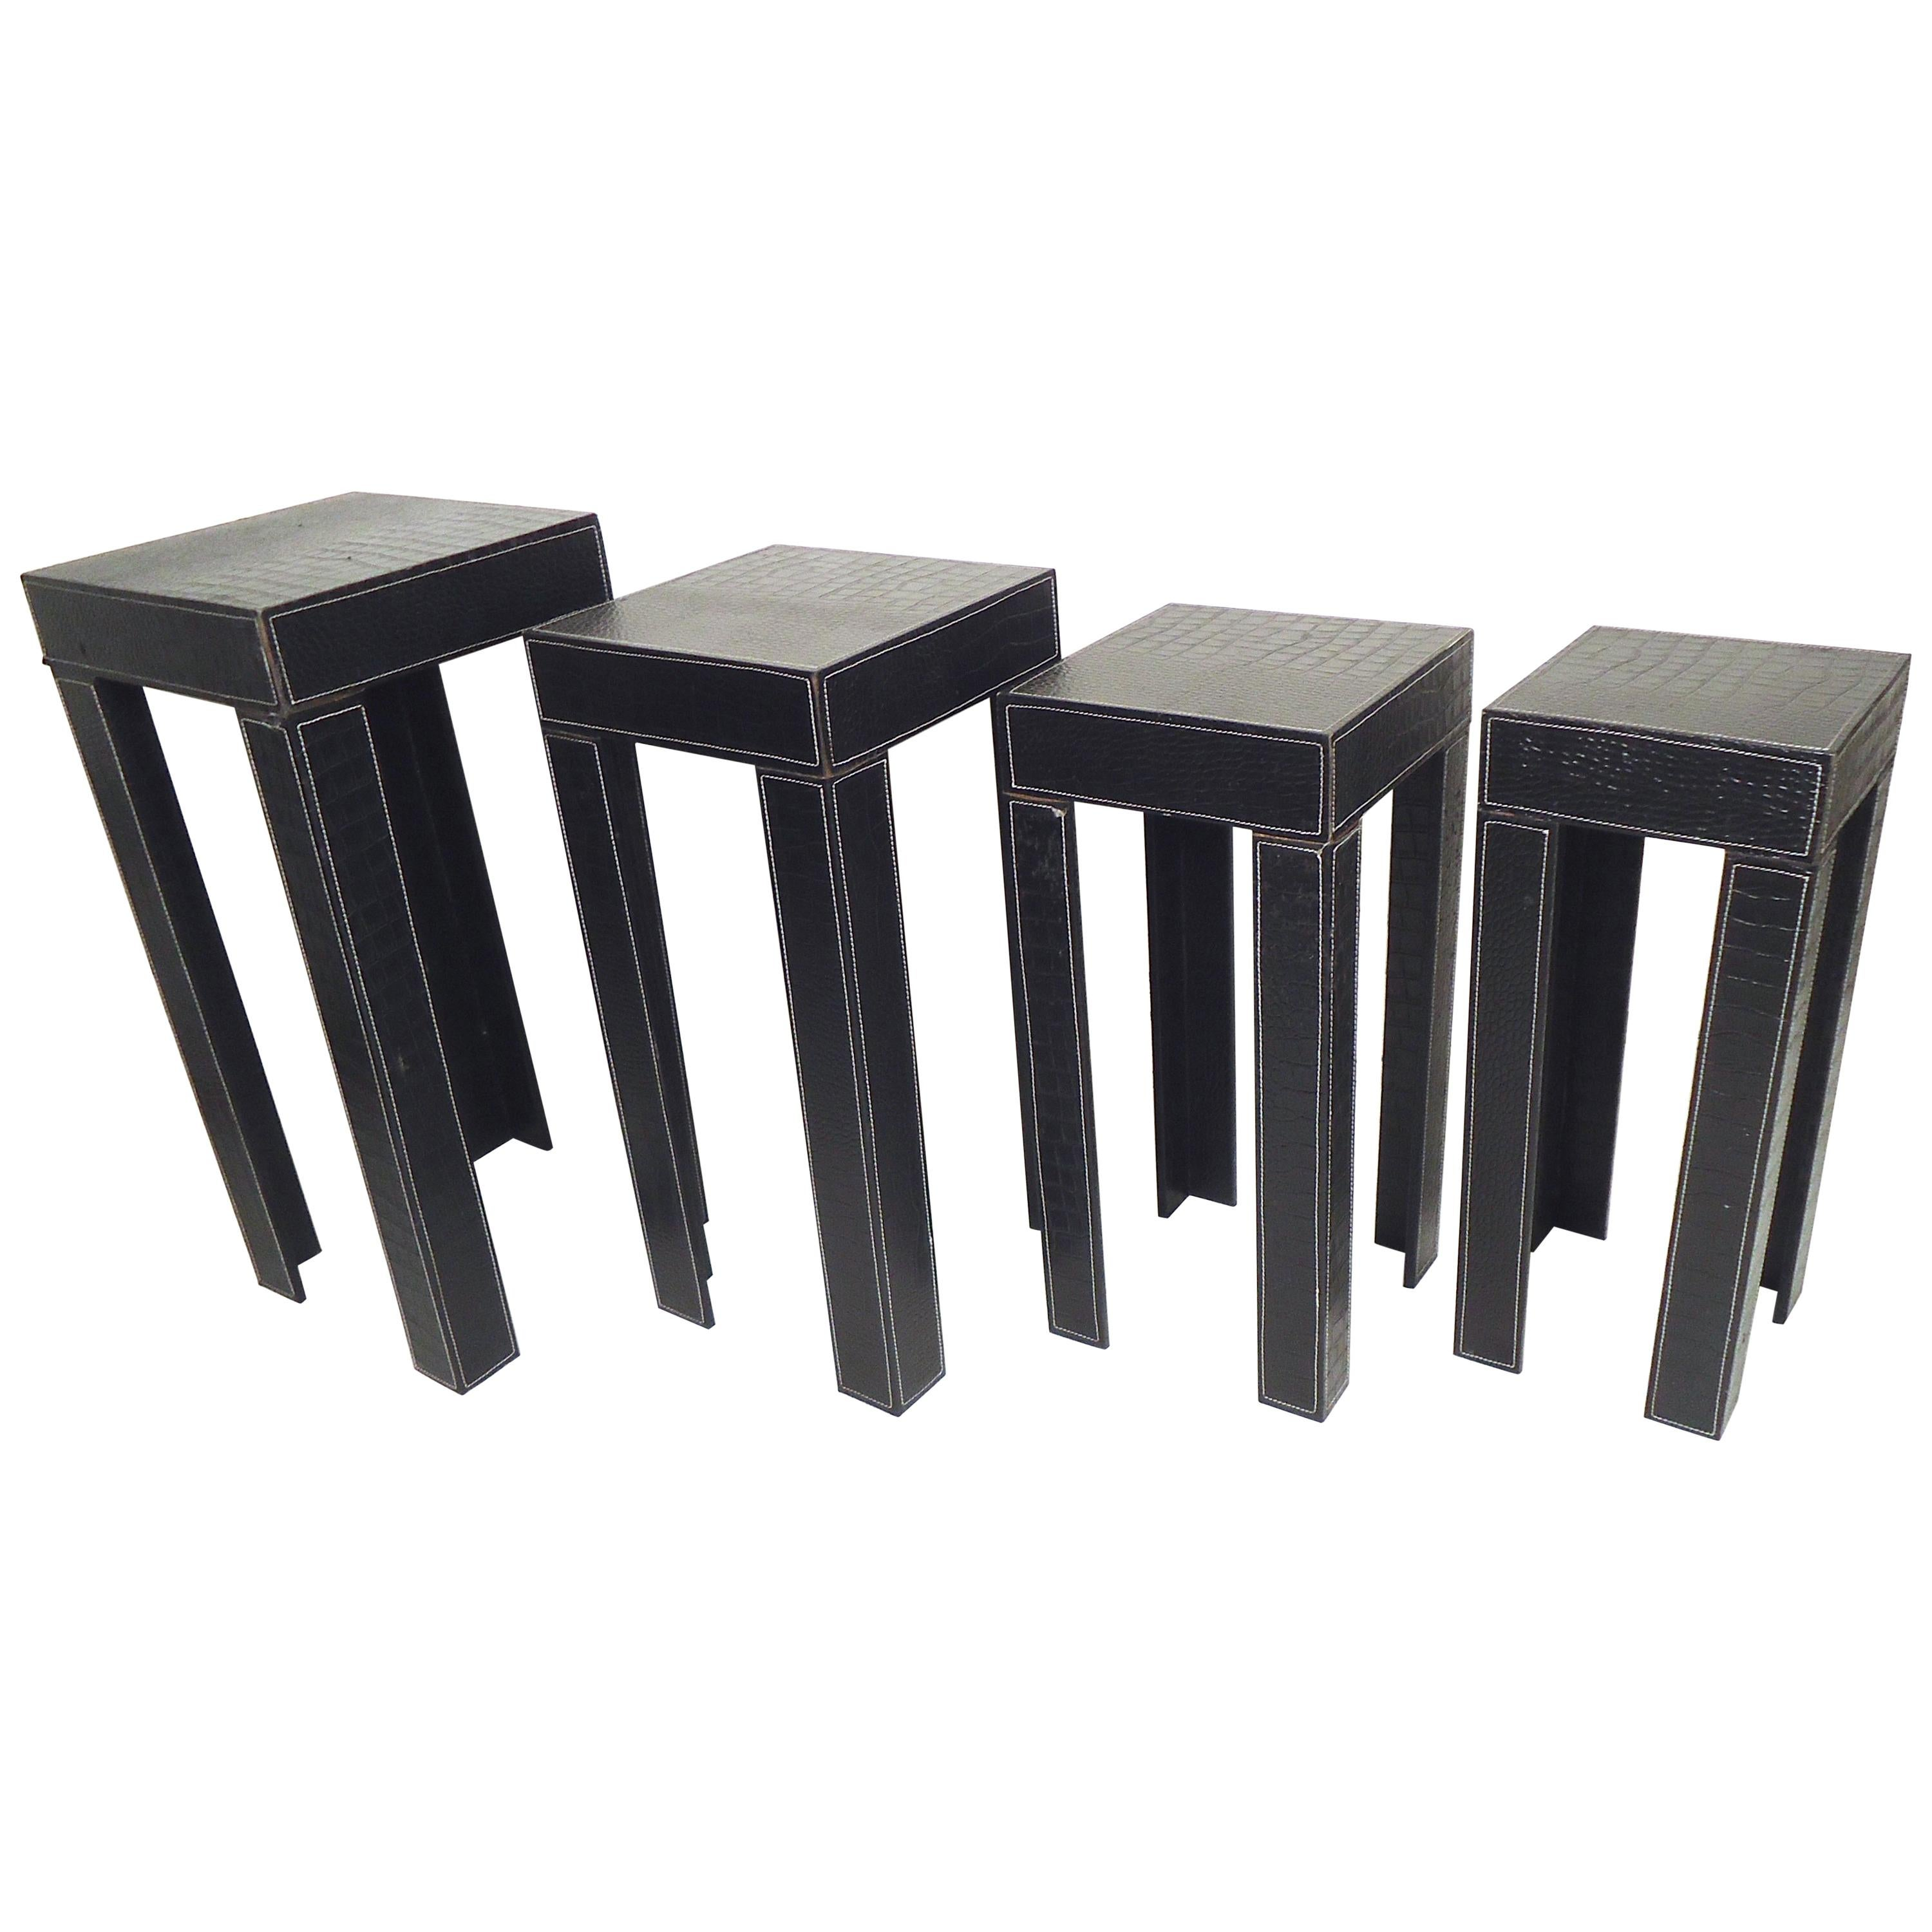 Set of Black Leather Nesting Tables